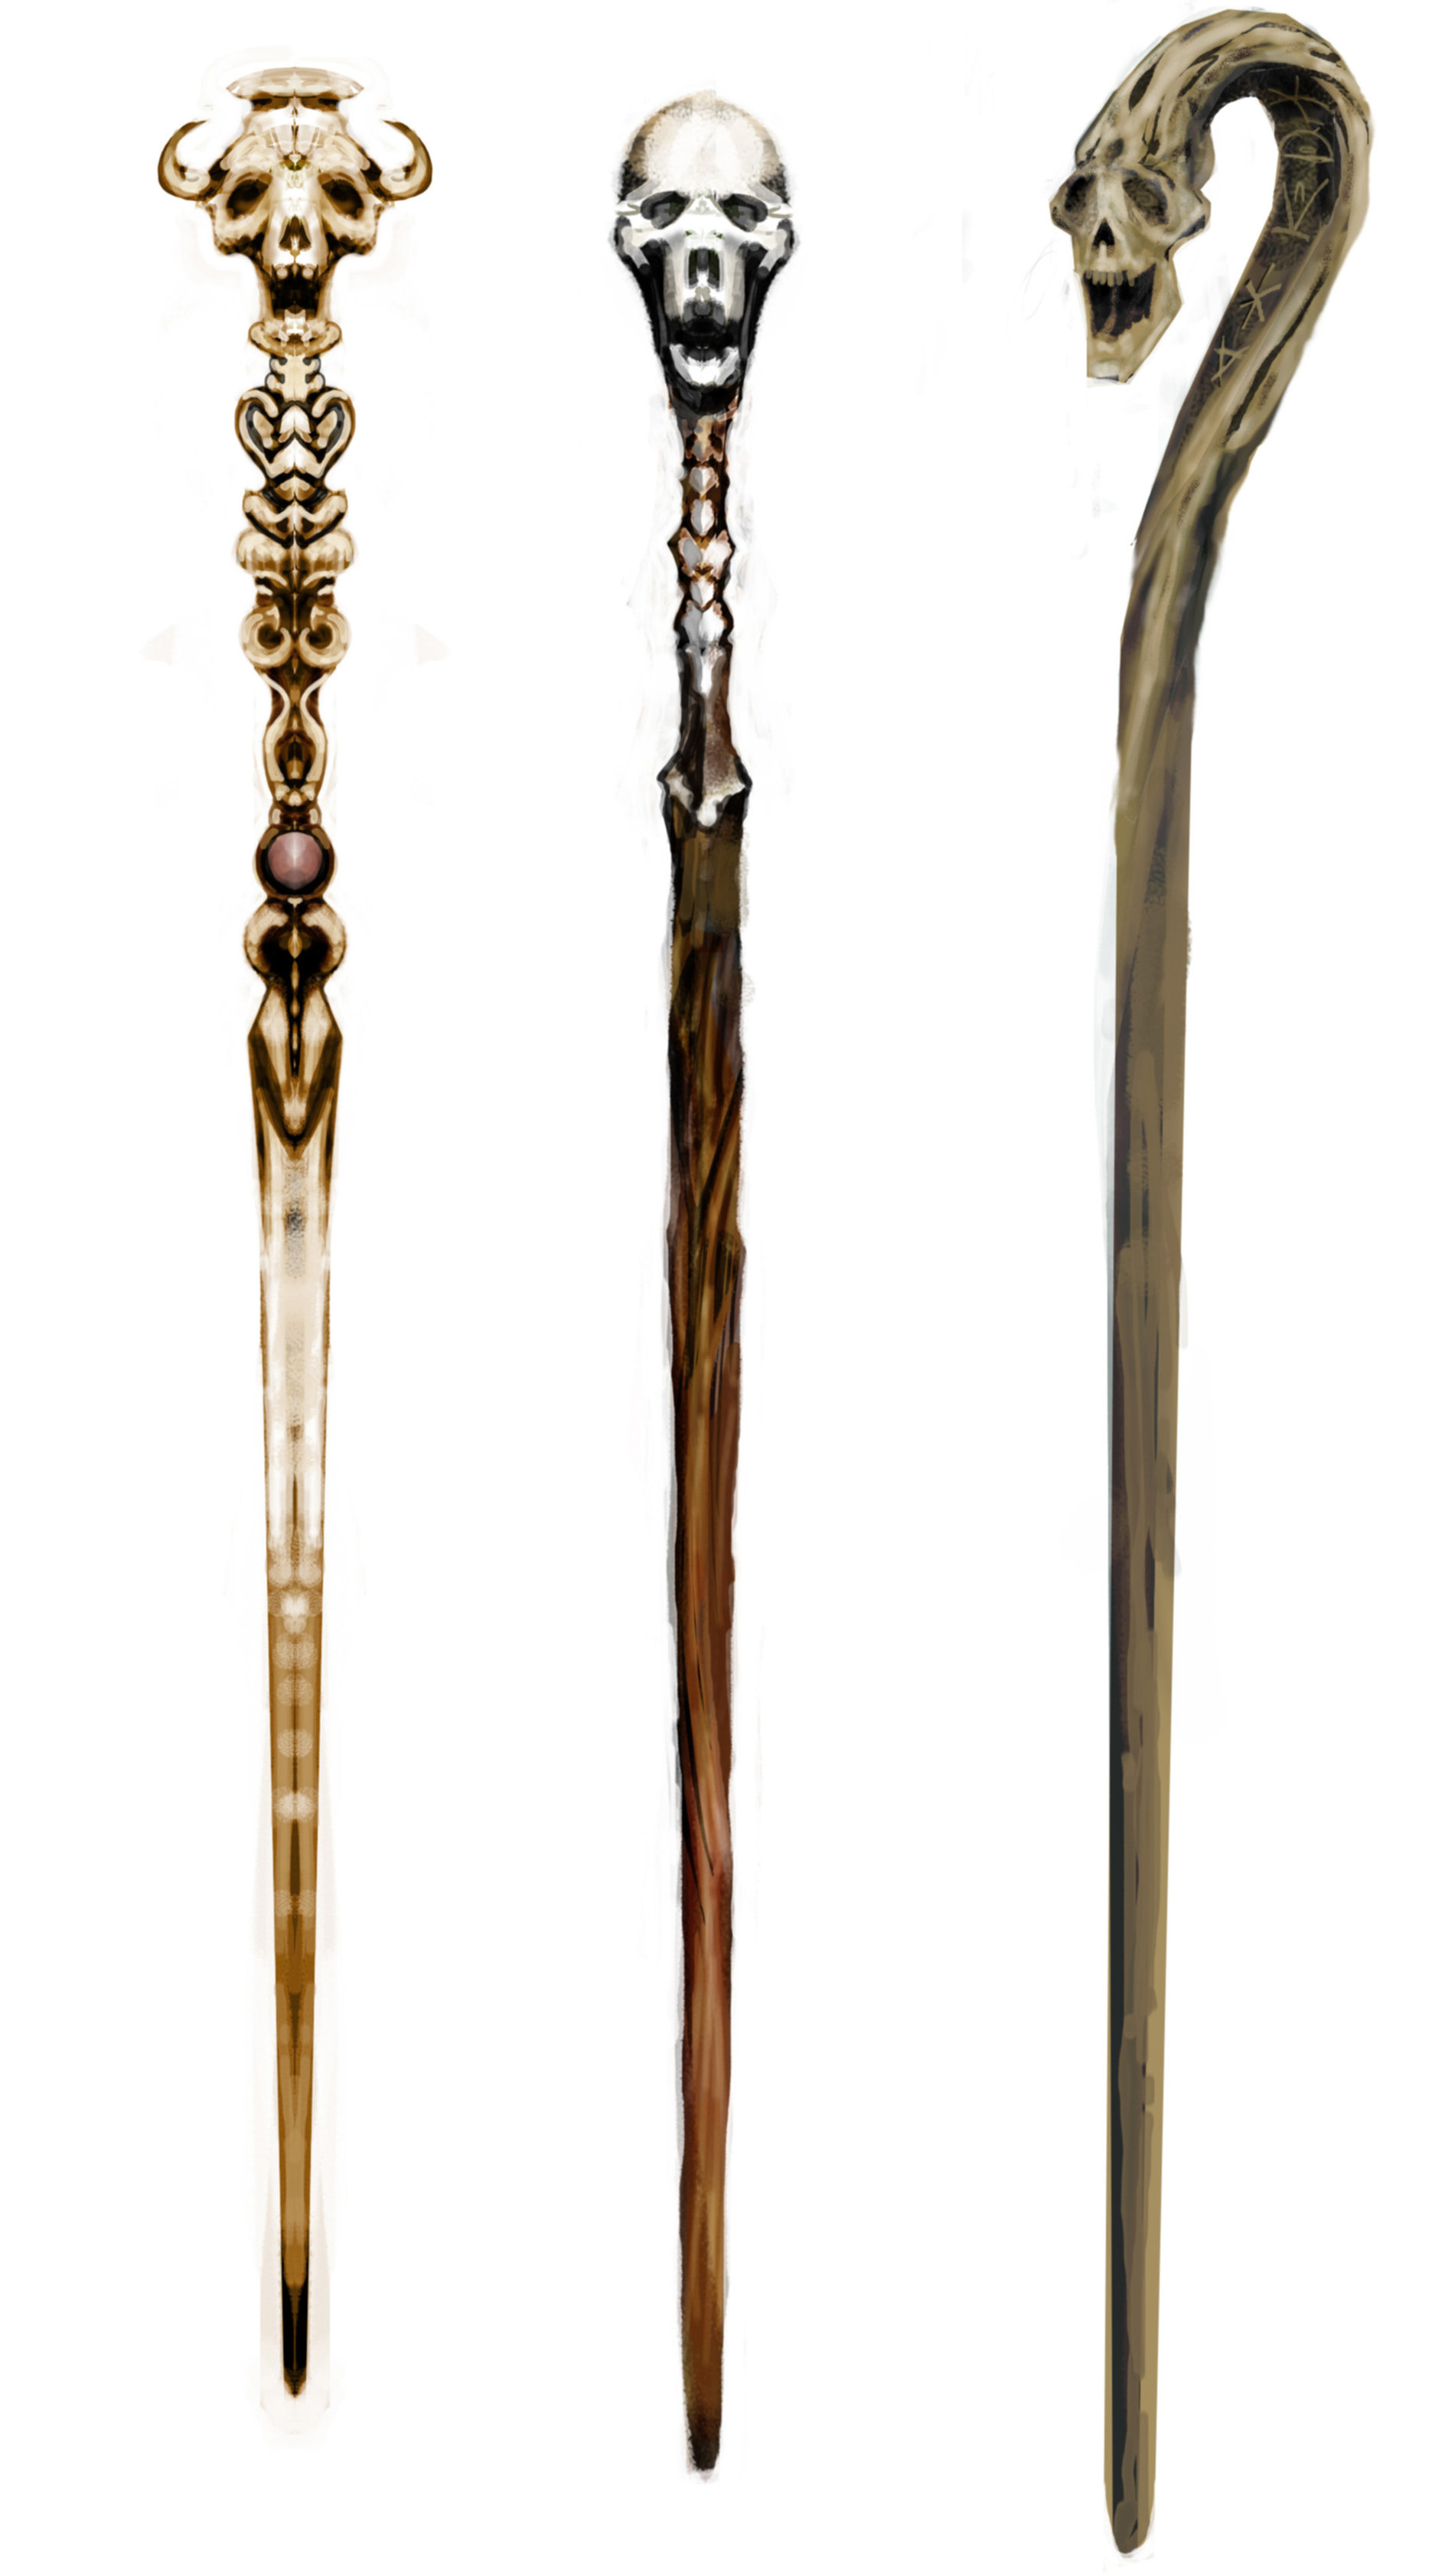 Three of the Death Eaters wands from the Goblet of Fire